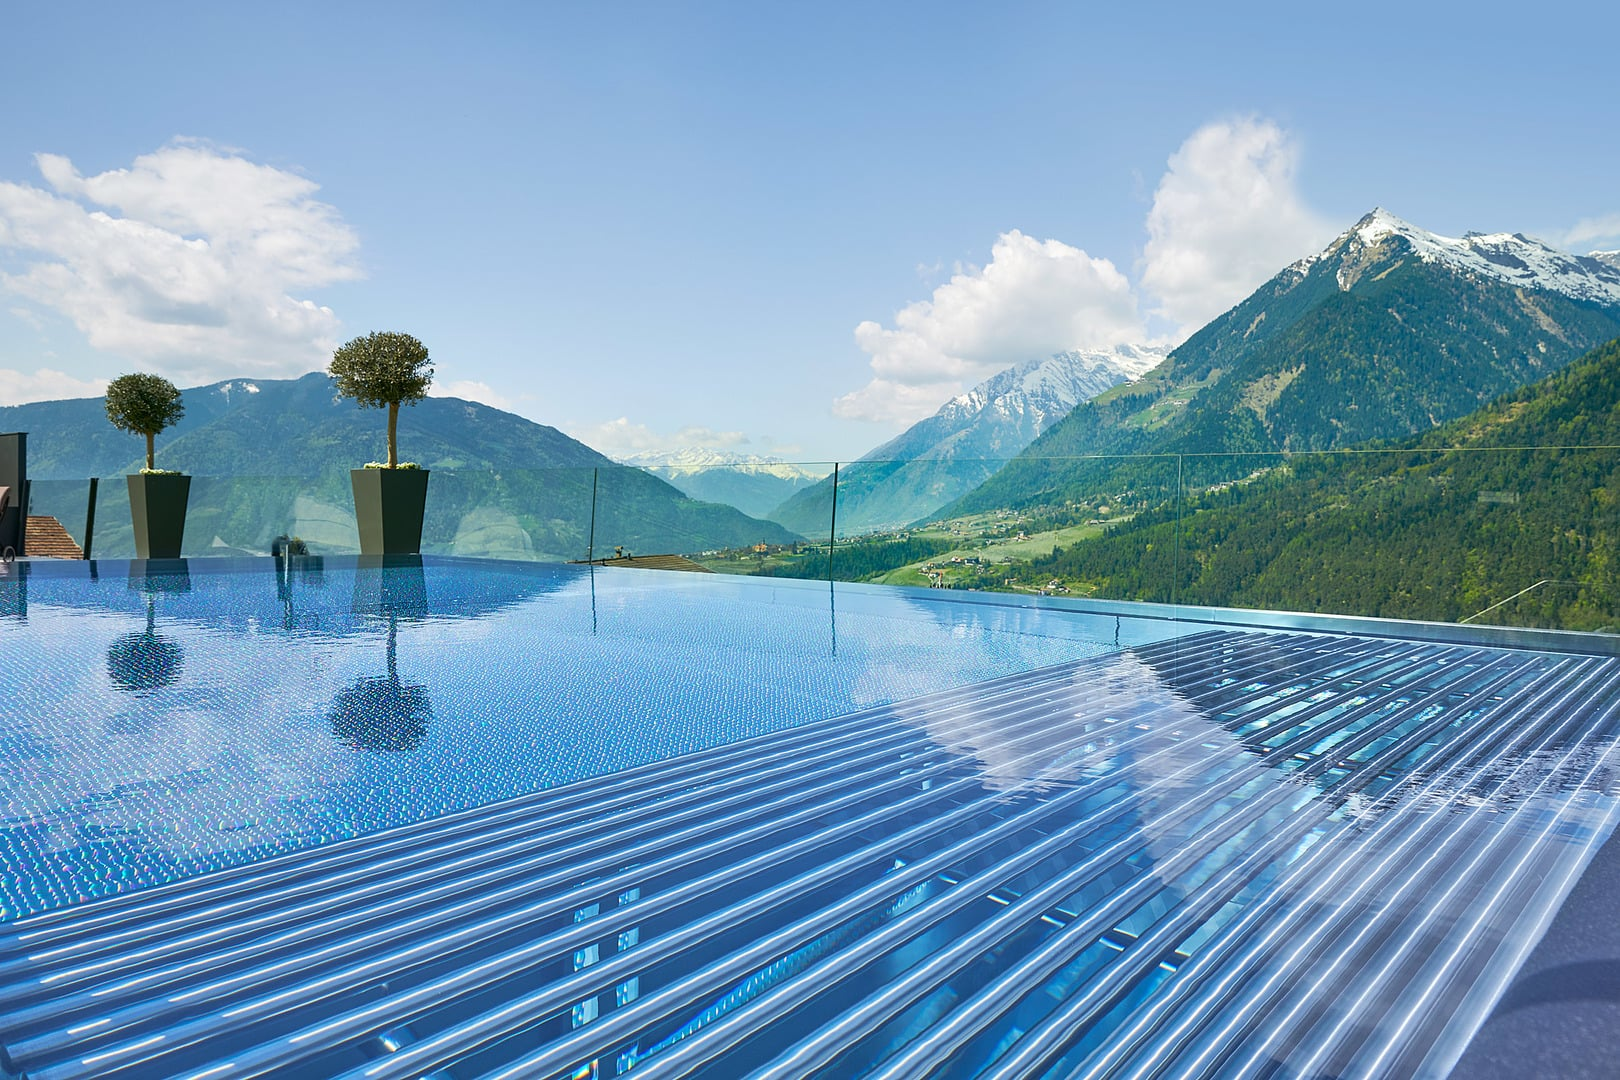 Sonnenparadies - Infinity-Pool